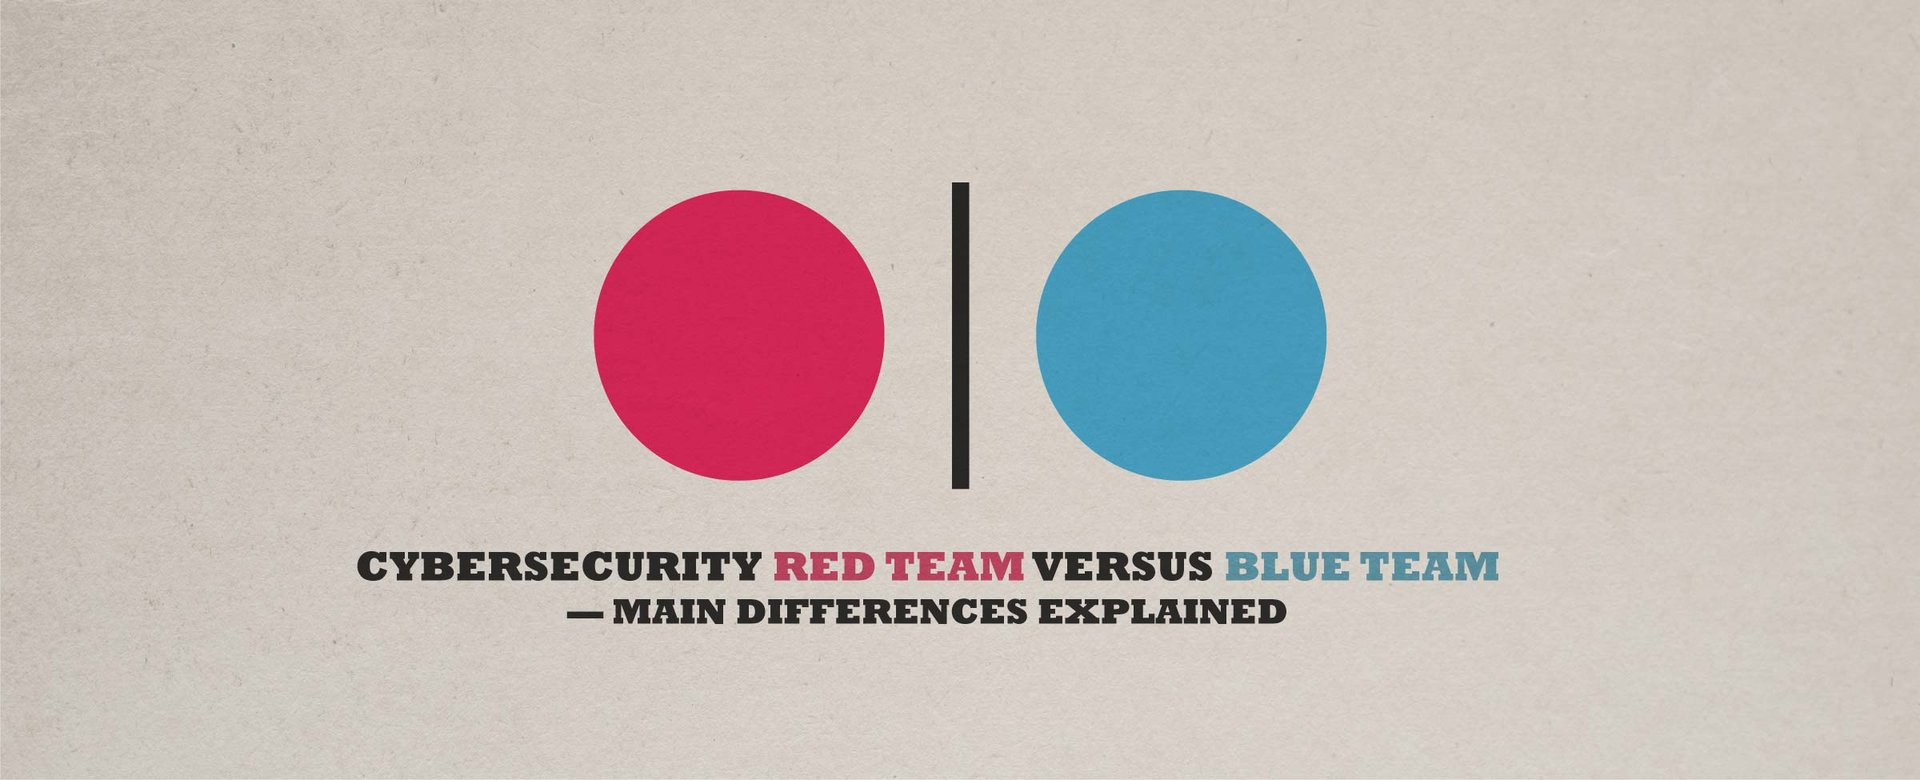 Cybersecurity Red Team Versus Blue Team — Main Differences Explained